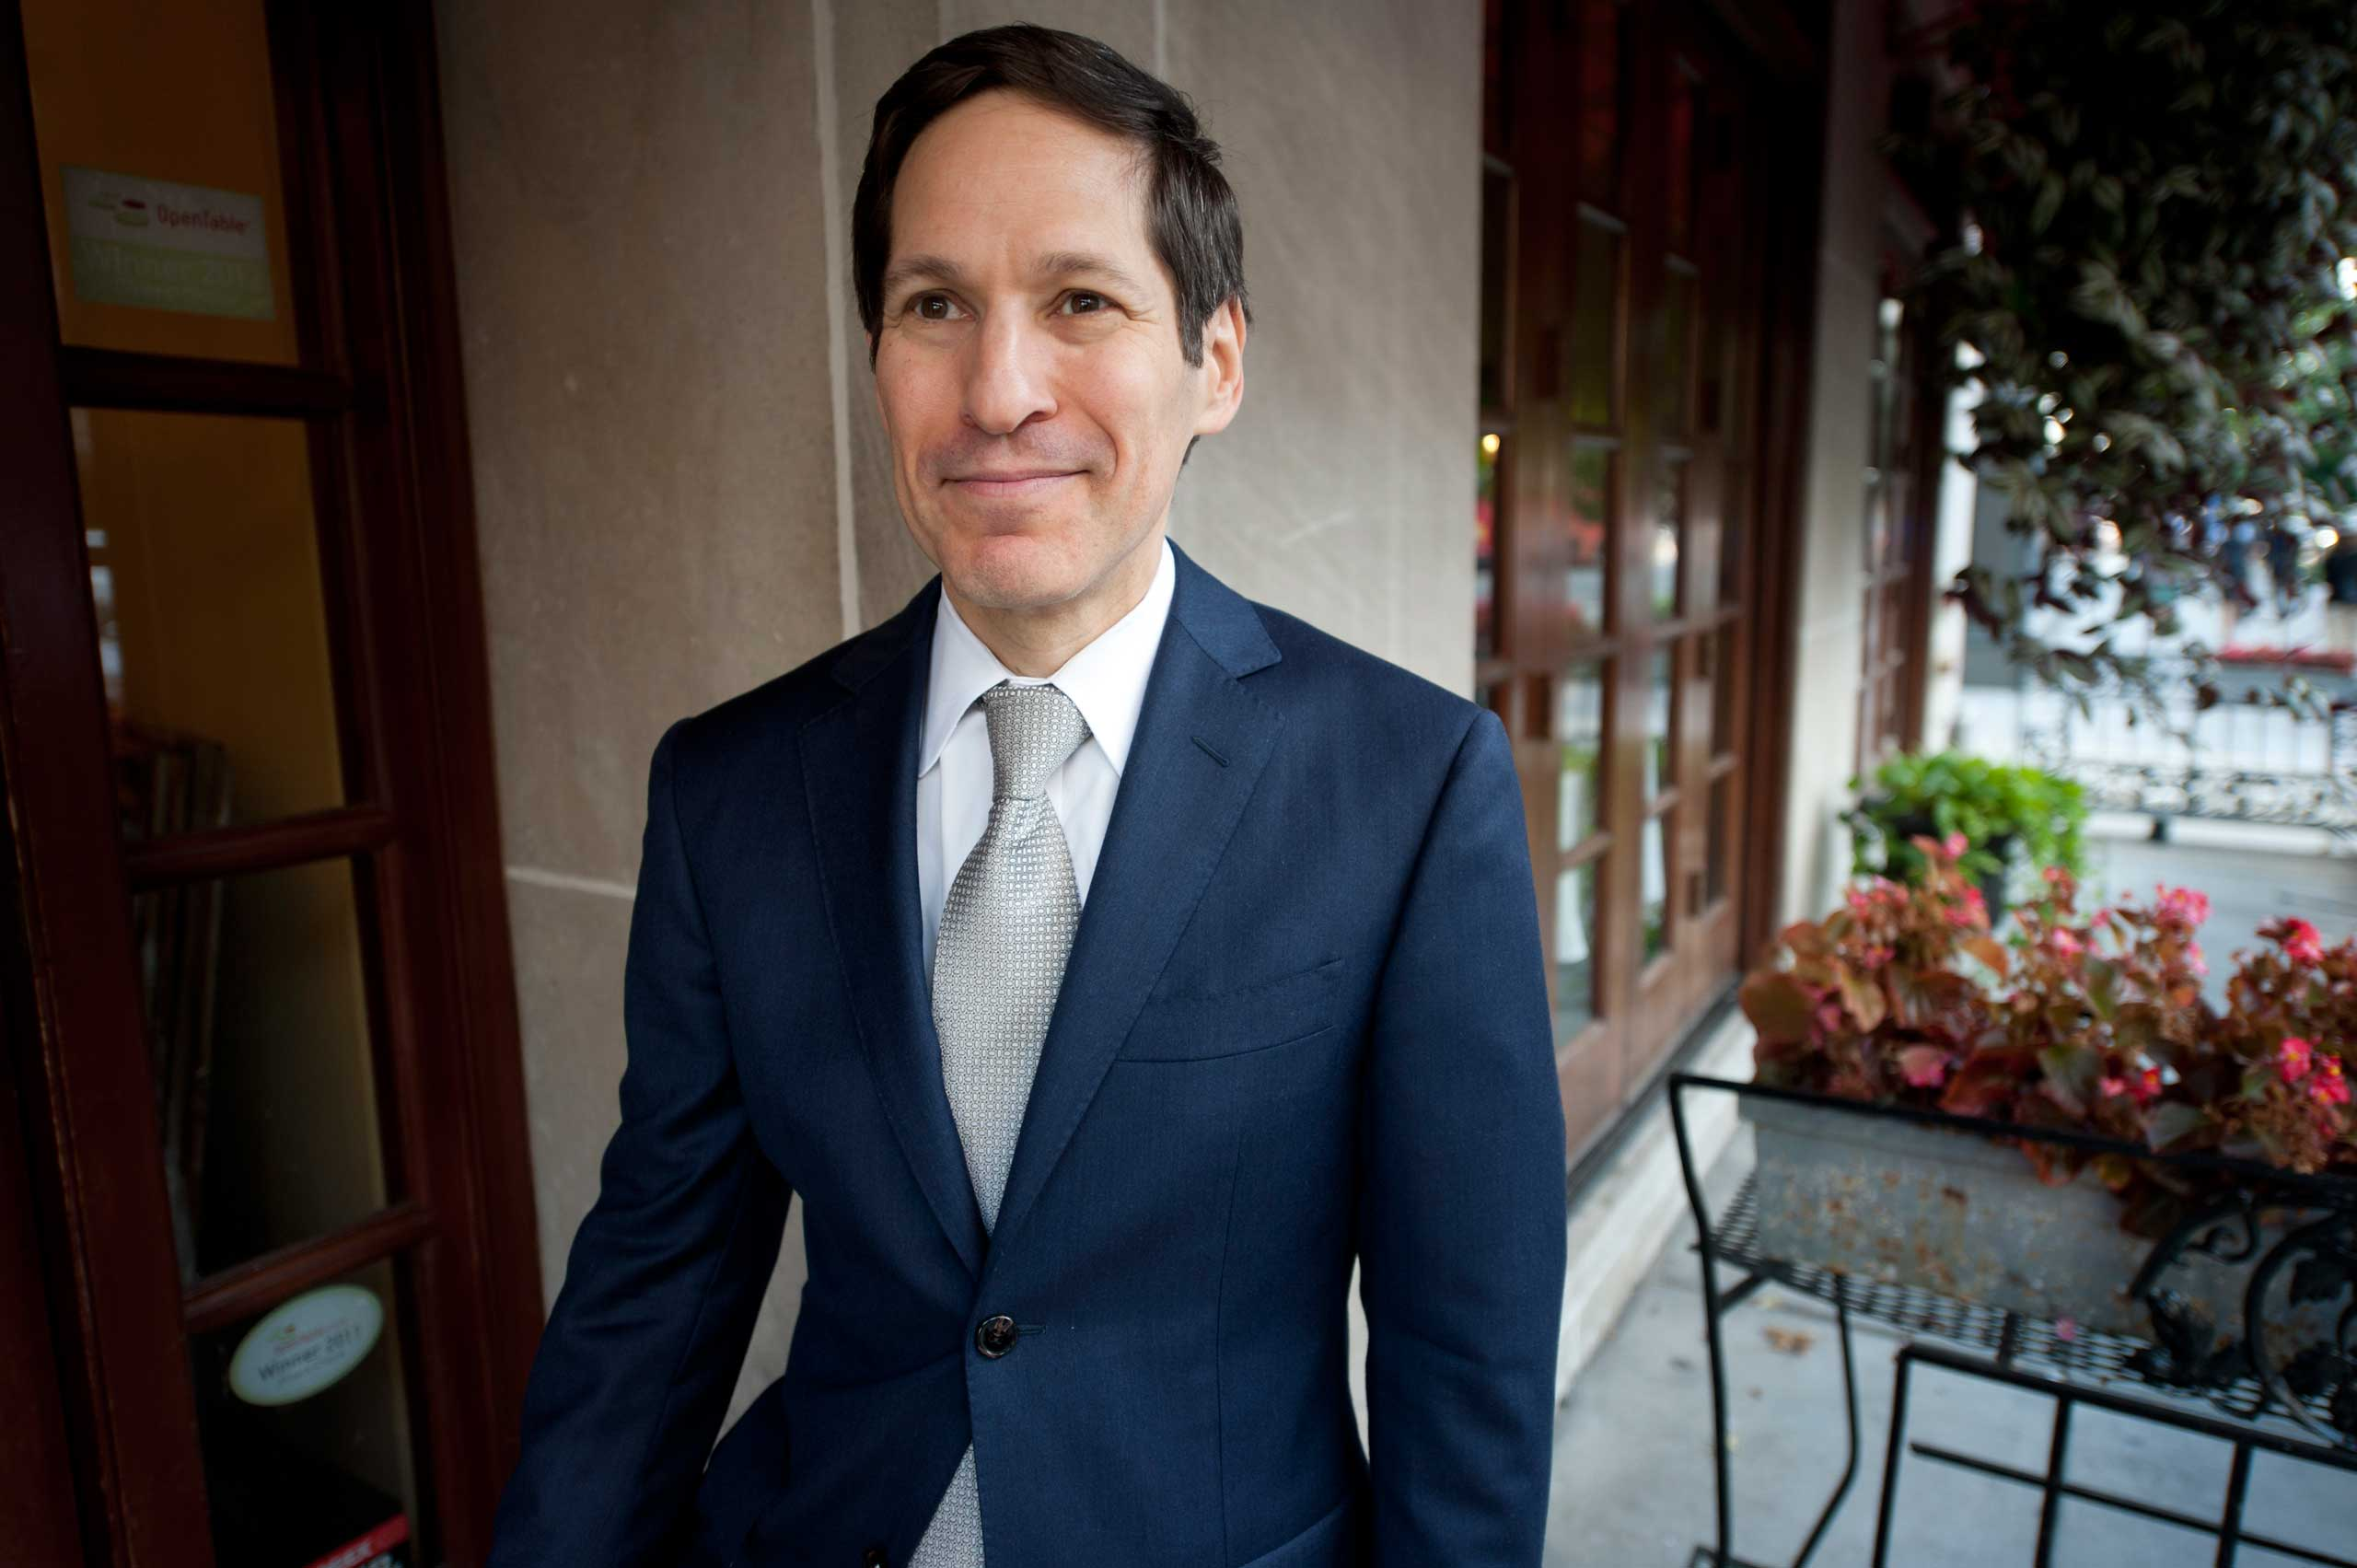 Centers for Disease Control and Prevention Director Tom Frieden poses for a photo in downtown Washington on Sept. 12, 2013.